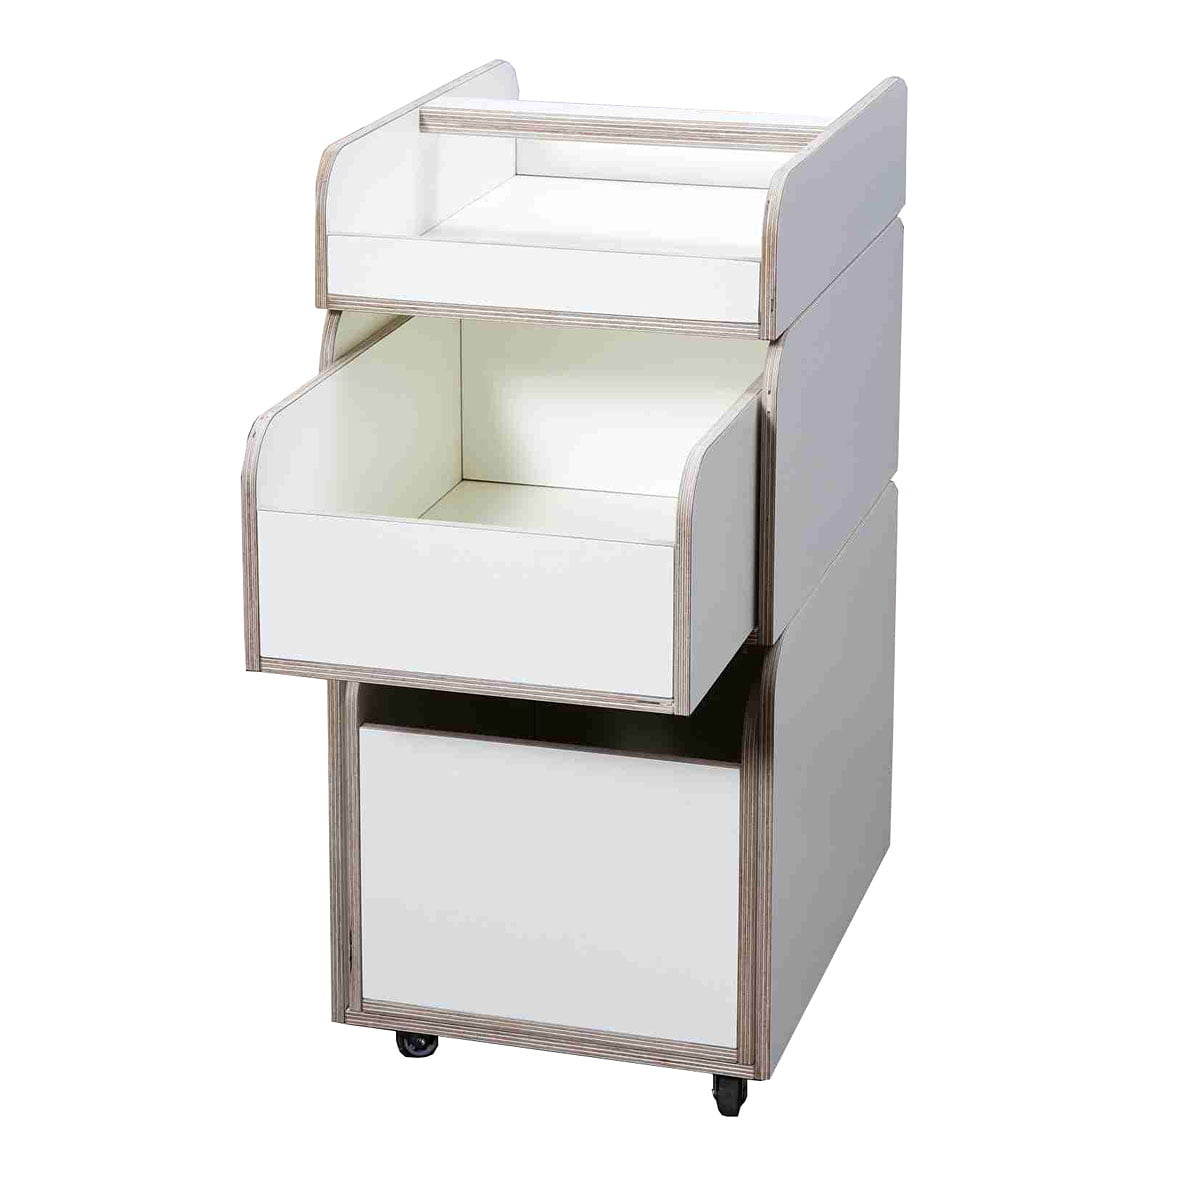 Pure Position (Growing Table) Pure Position - Growing Table Table Spaces Container, HPL weiß | Büro > Büroschränke > Container | Weiß | Multiplex birke weiß beschichtet | Pure Position (Growing Table)